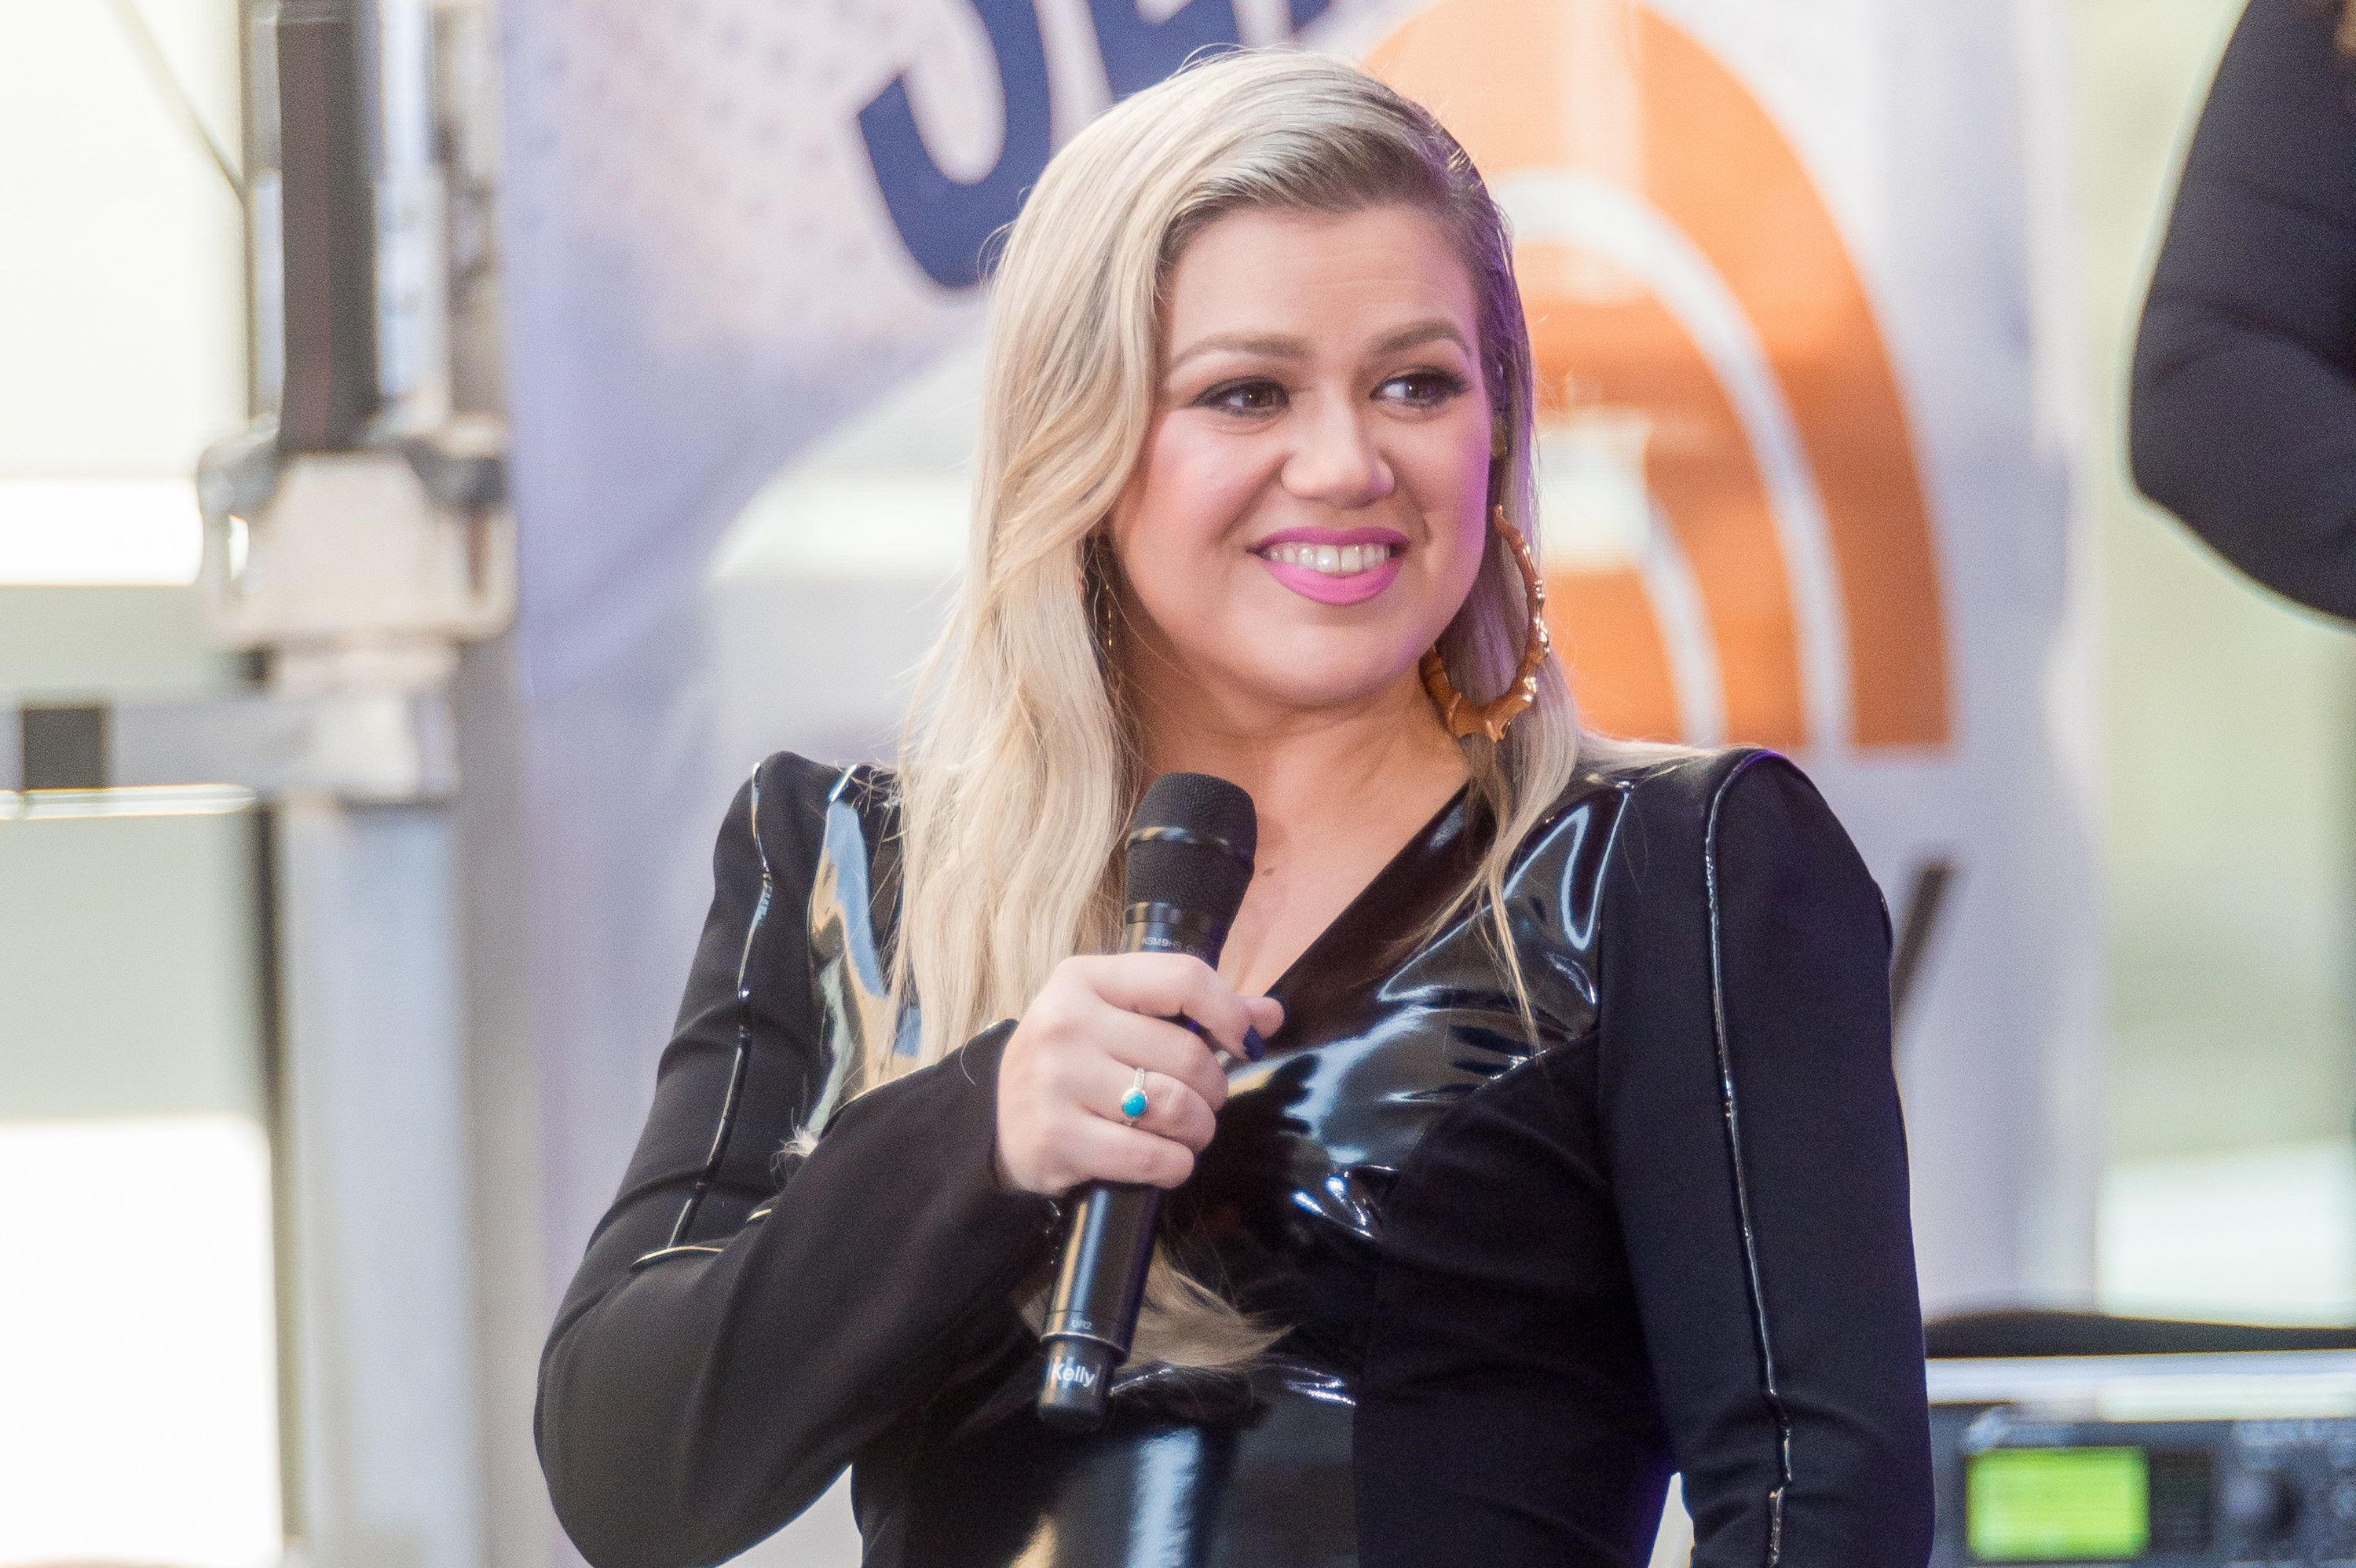 NEW YORK, NY - JUNE 08:  Kelly Clarkson Performs On NBC's 'Today' at Rockefeller Plaza on June 8, 2018 in New York City.  (Photo by Mark Sagliocco/WireImage)